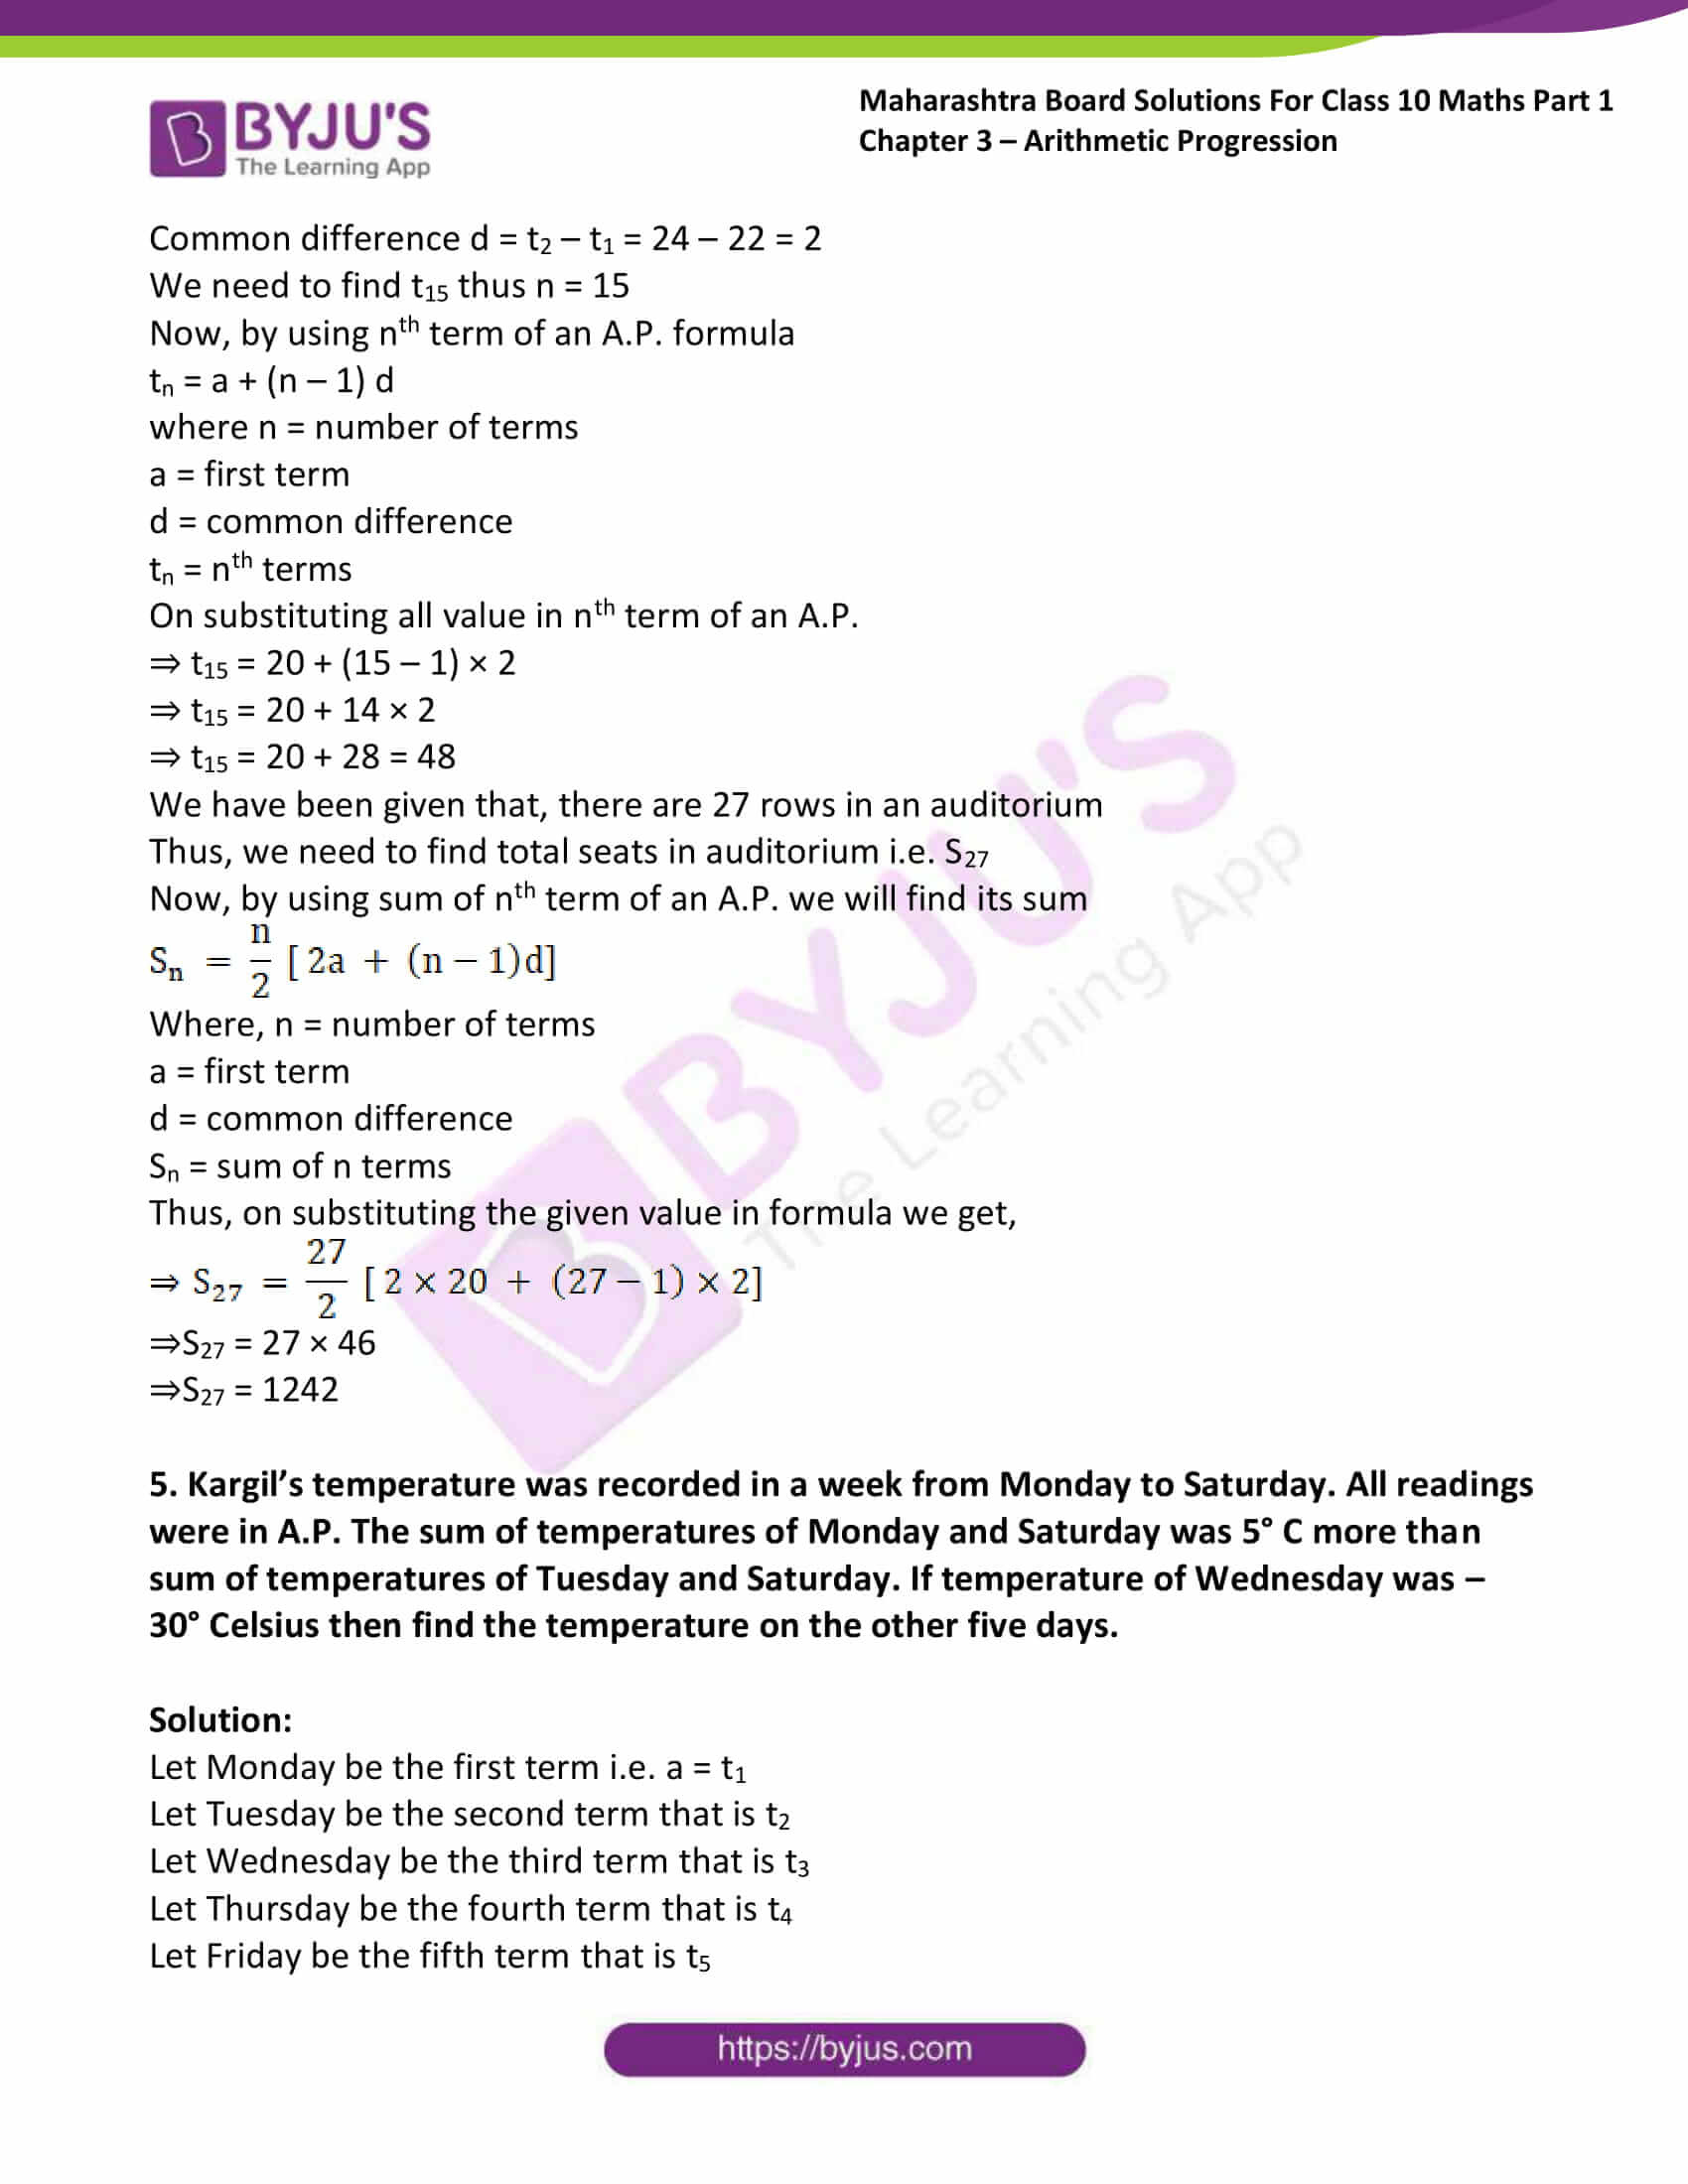 msbshse solutions class 10 maths part 1 chapter 3 28